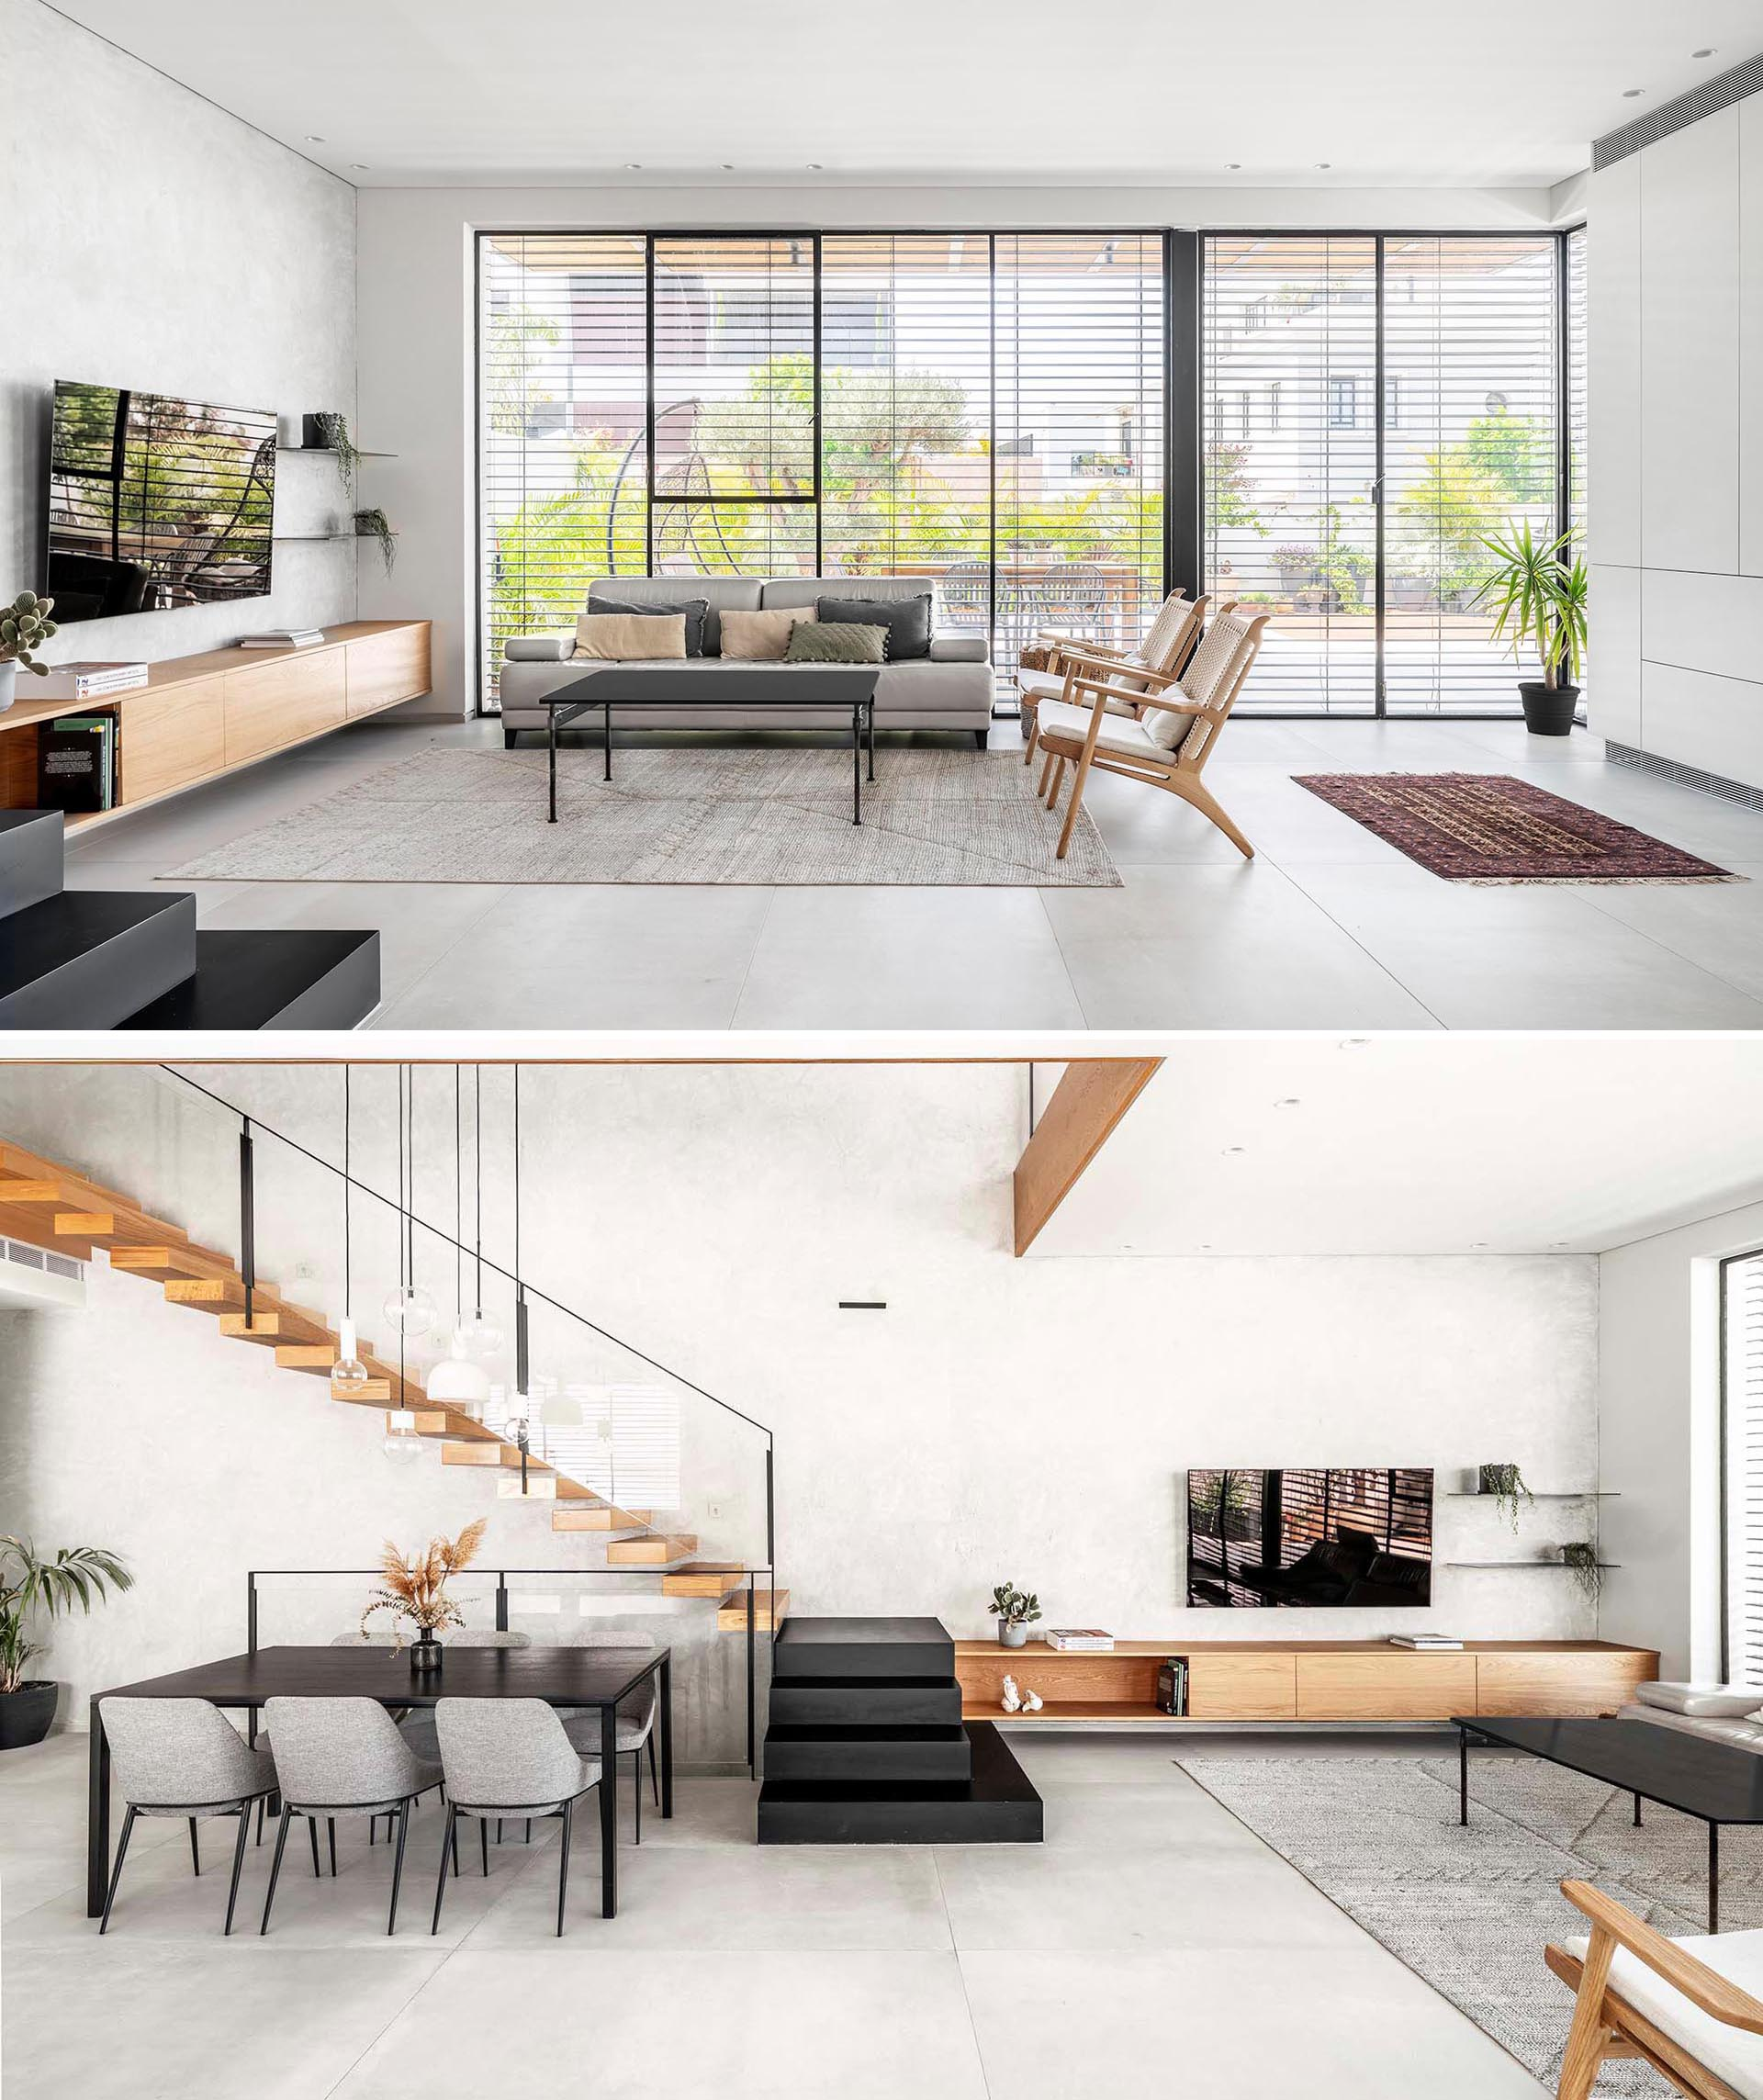 Tall windows line the walls of this modern interior and let in copious amounts of natural light into the open living room, dining area, and kitchen.